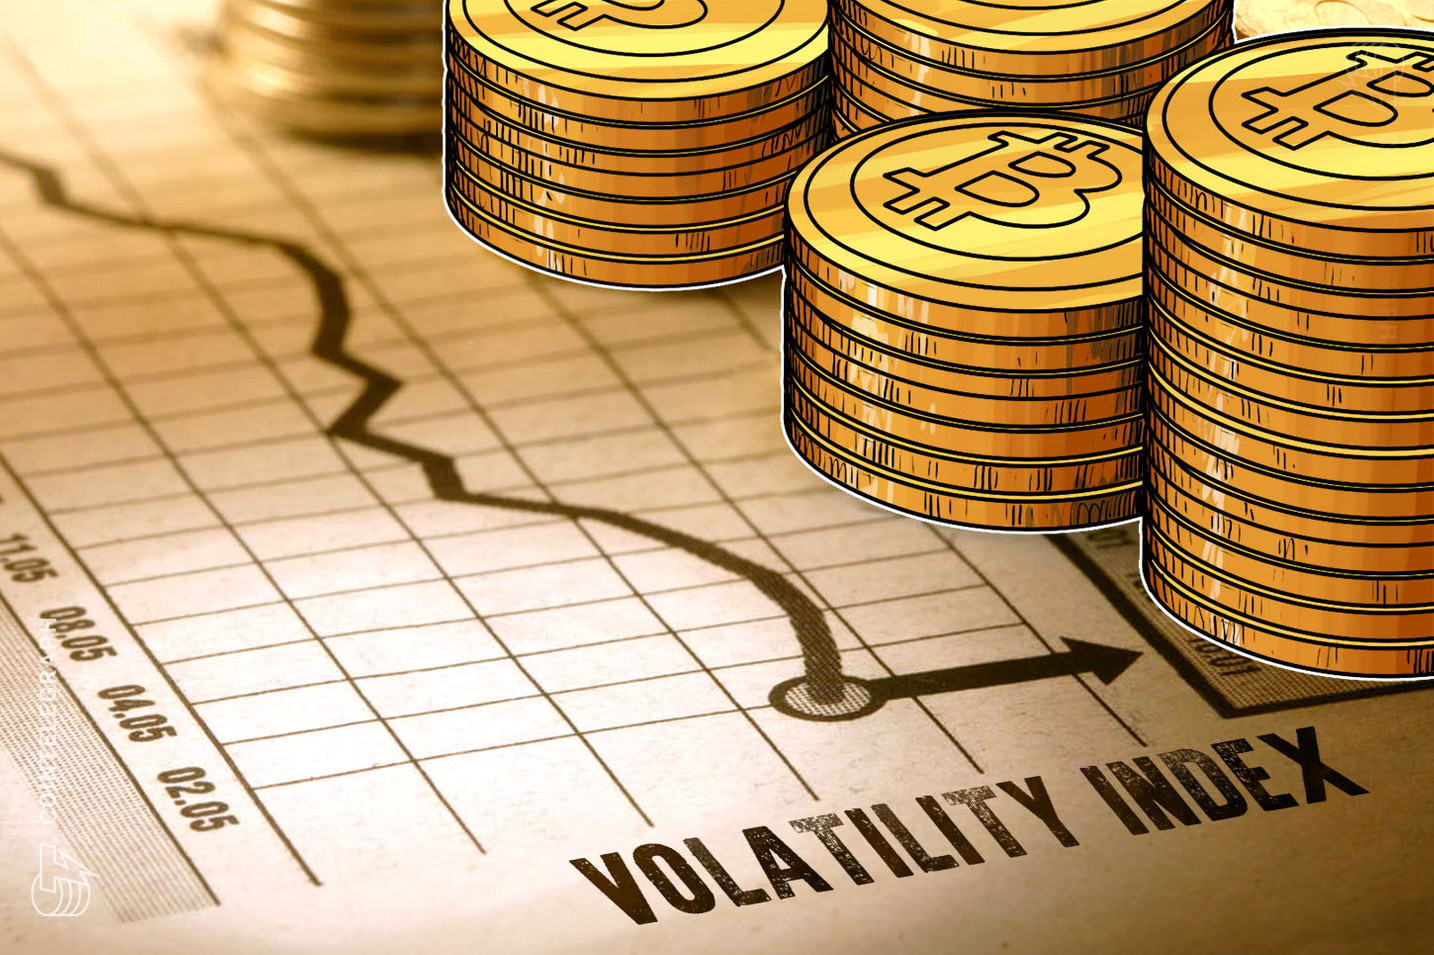 Crypto Asset Manager LedgerX Launches Bitcoin Volatility Index